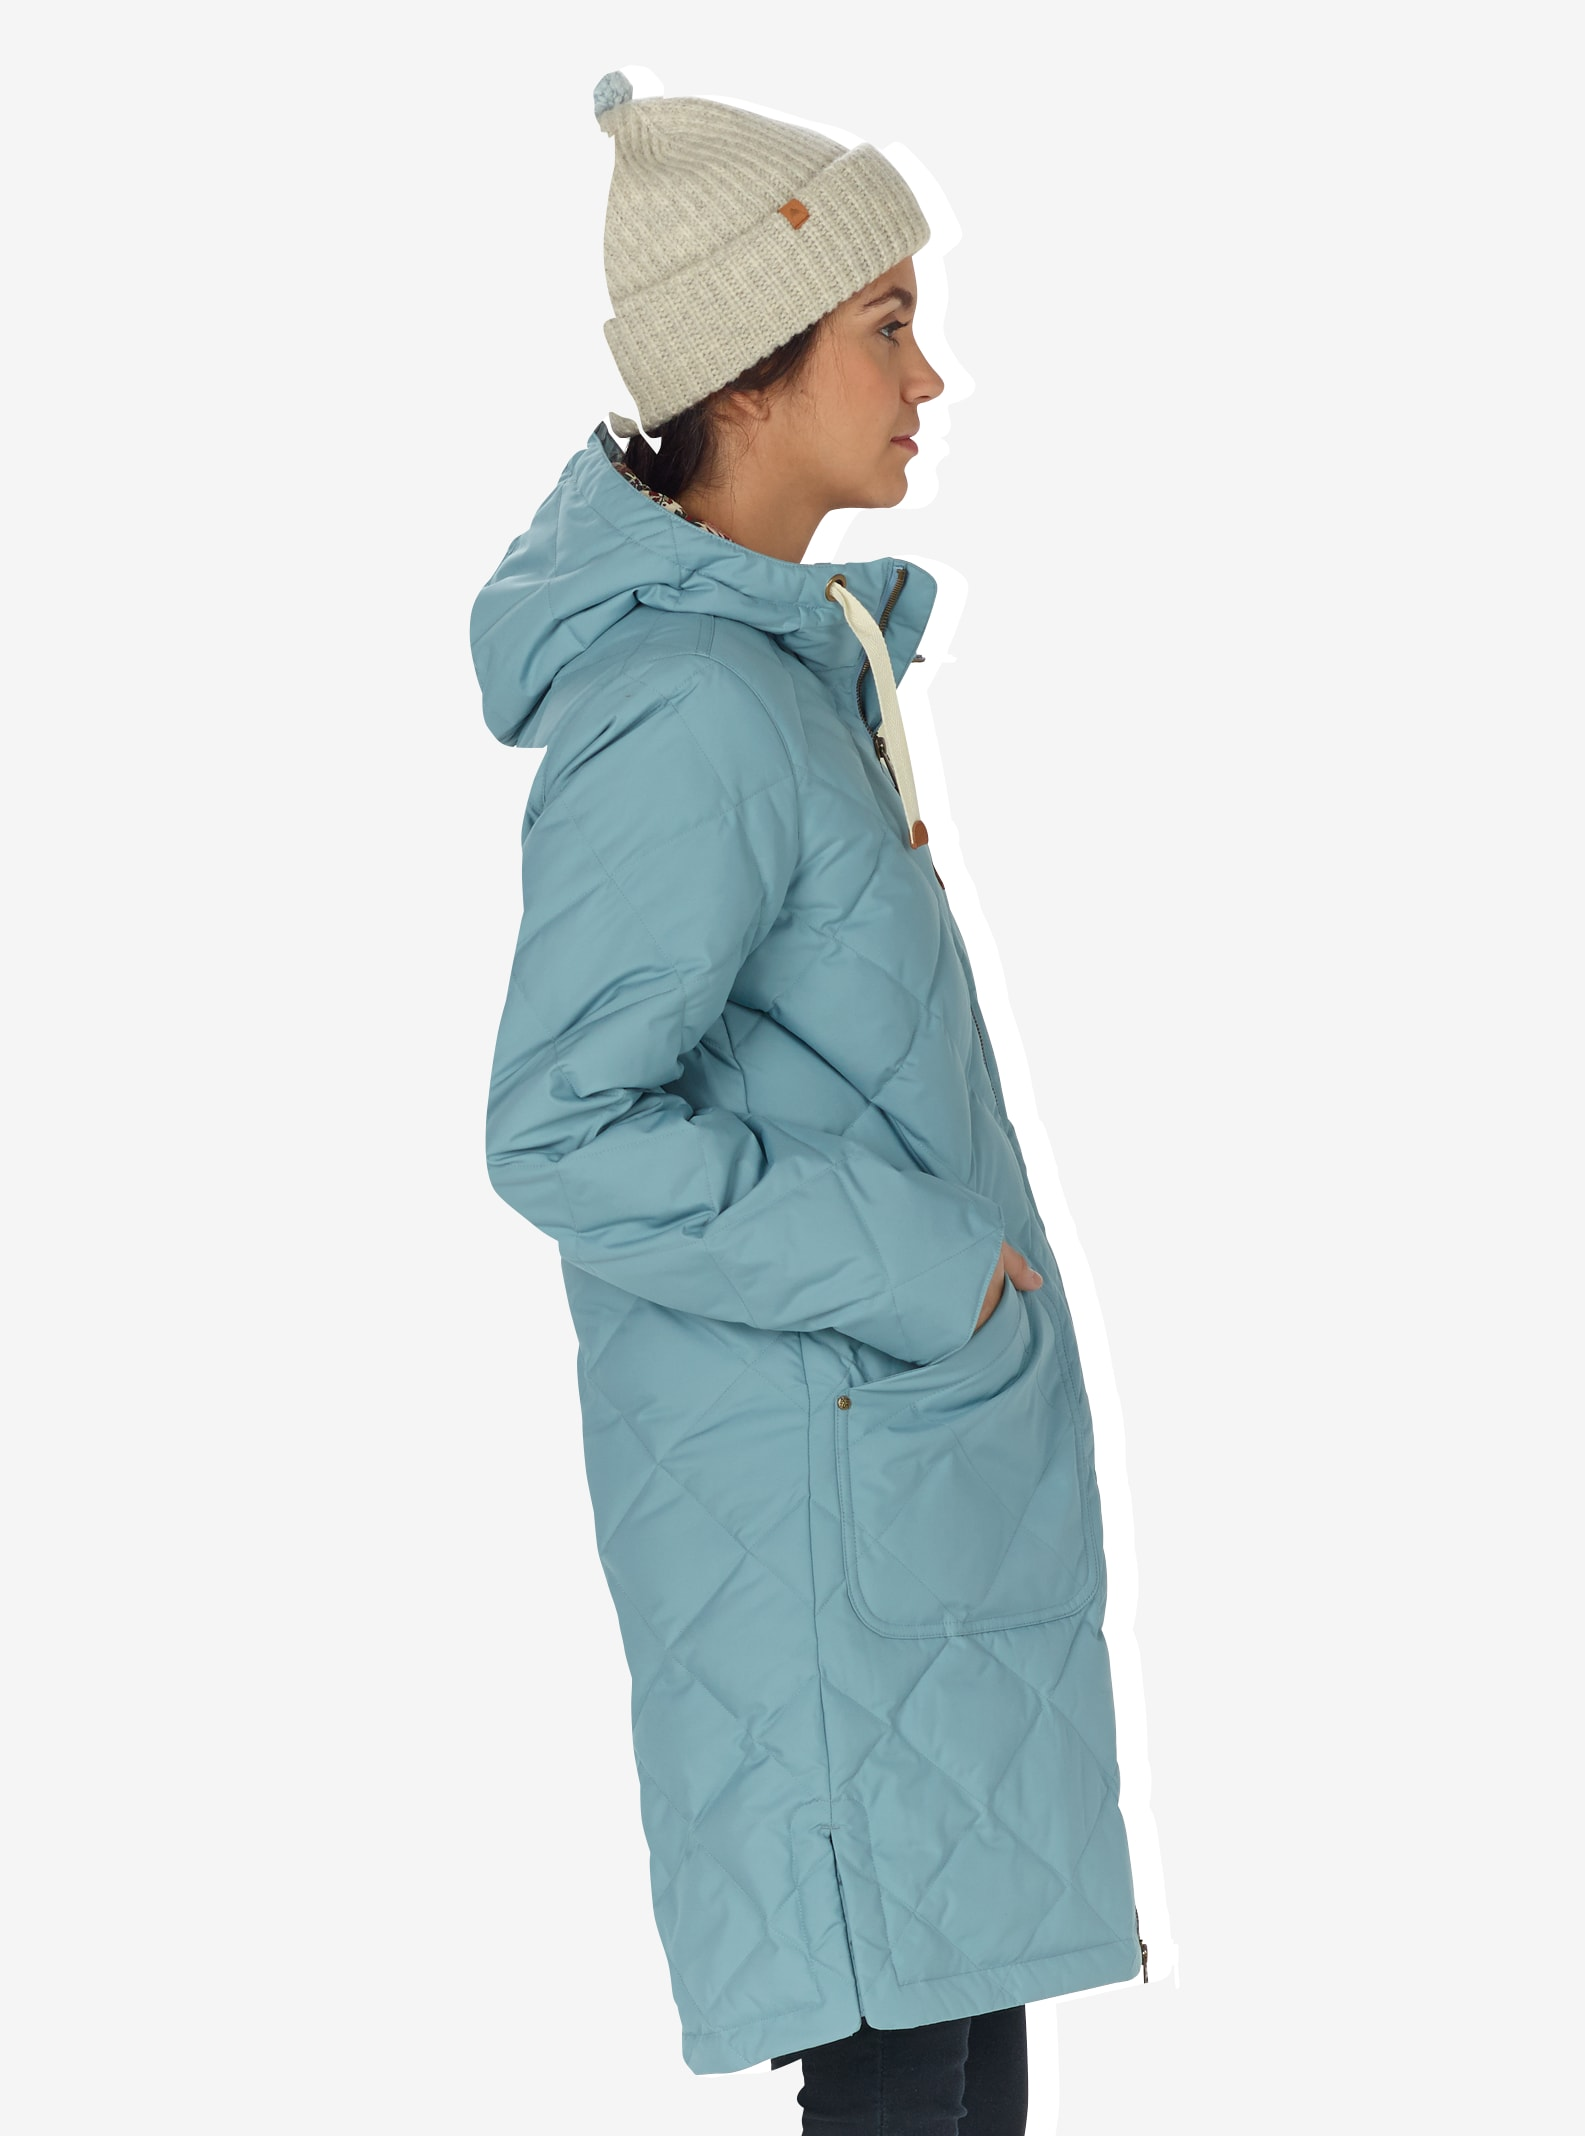 Women's Burton Bixby Long Down Jacket shown in Winter Sky